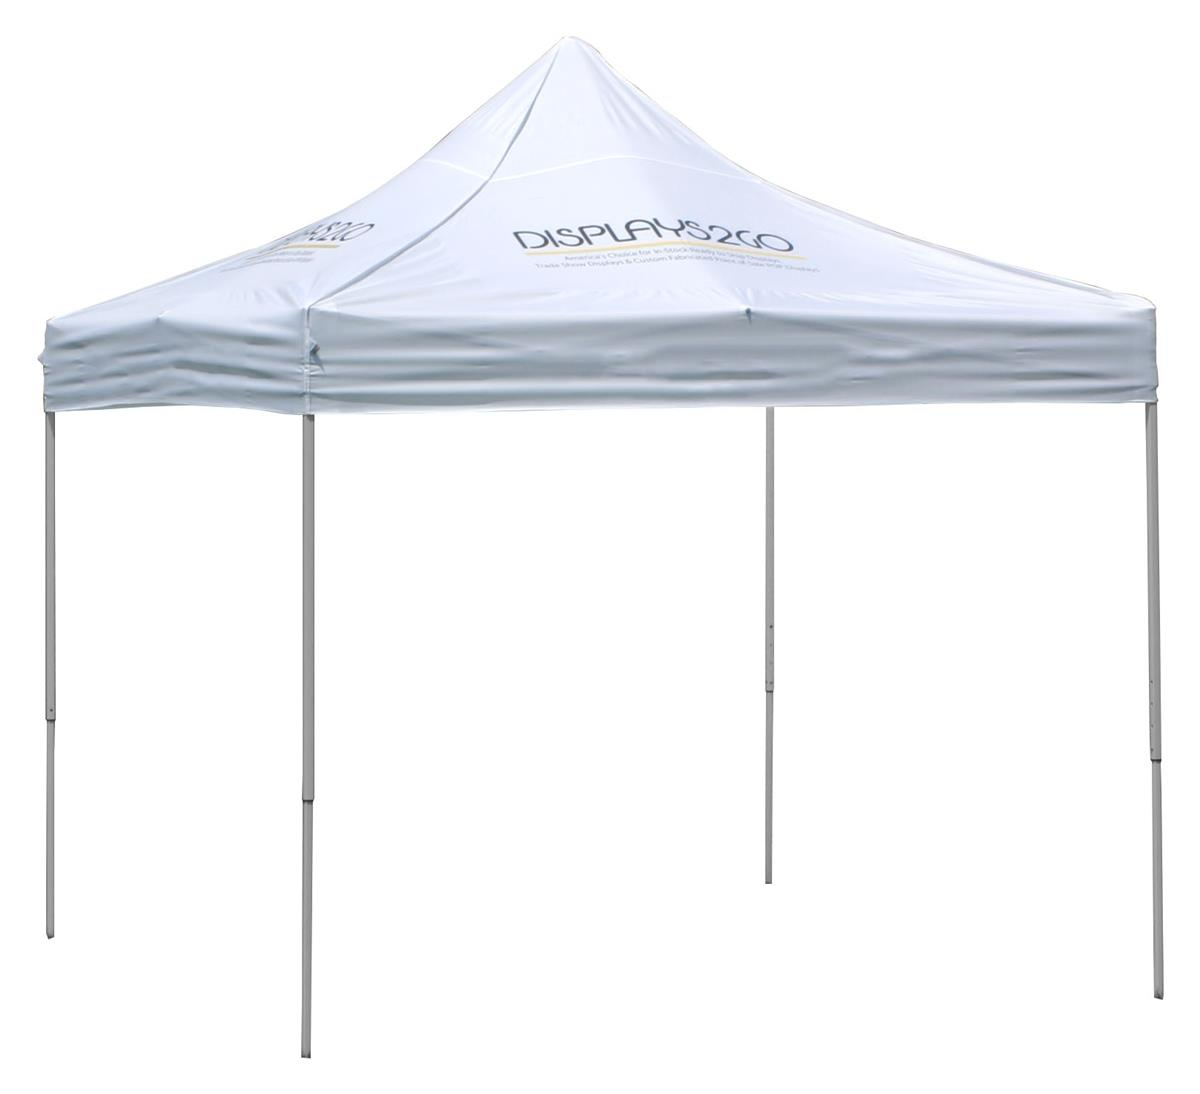 hot sale online 99a53 0a82e 10 x 10 Outdoor Canopy Tent with 4 Custom Imprints, Pop-up, Square - White